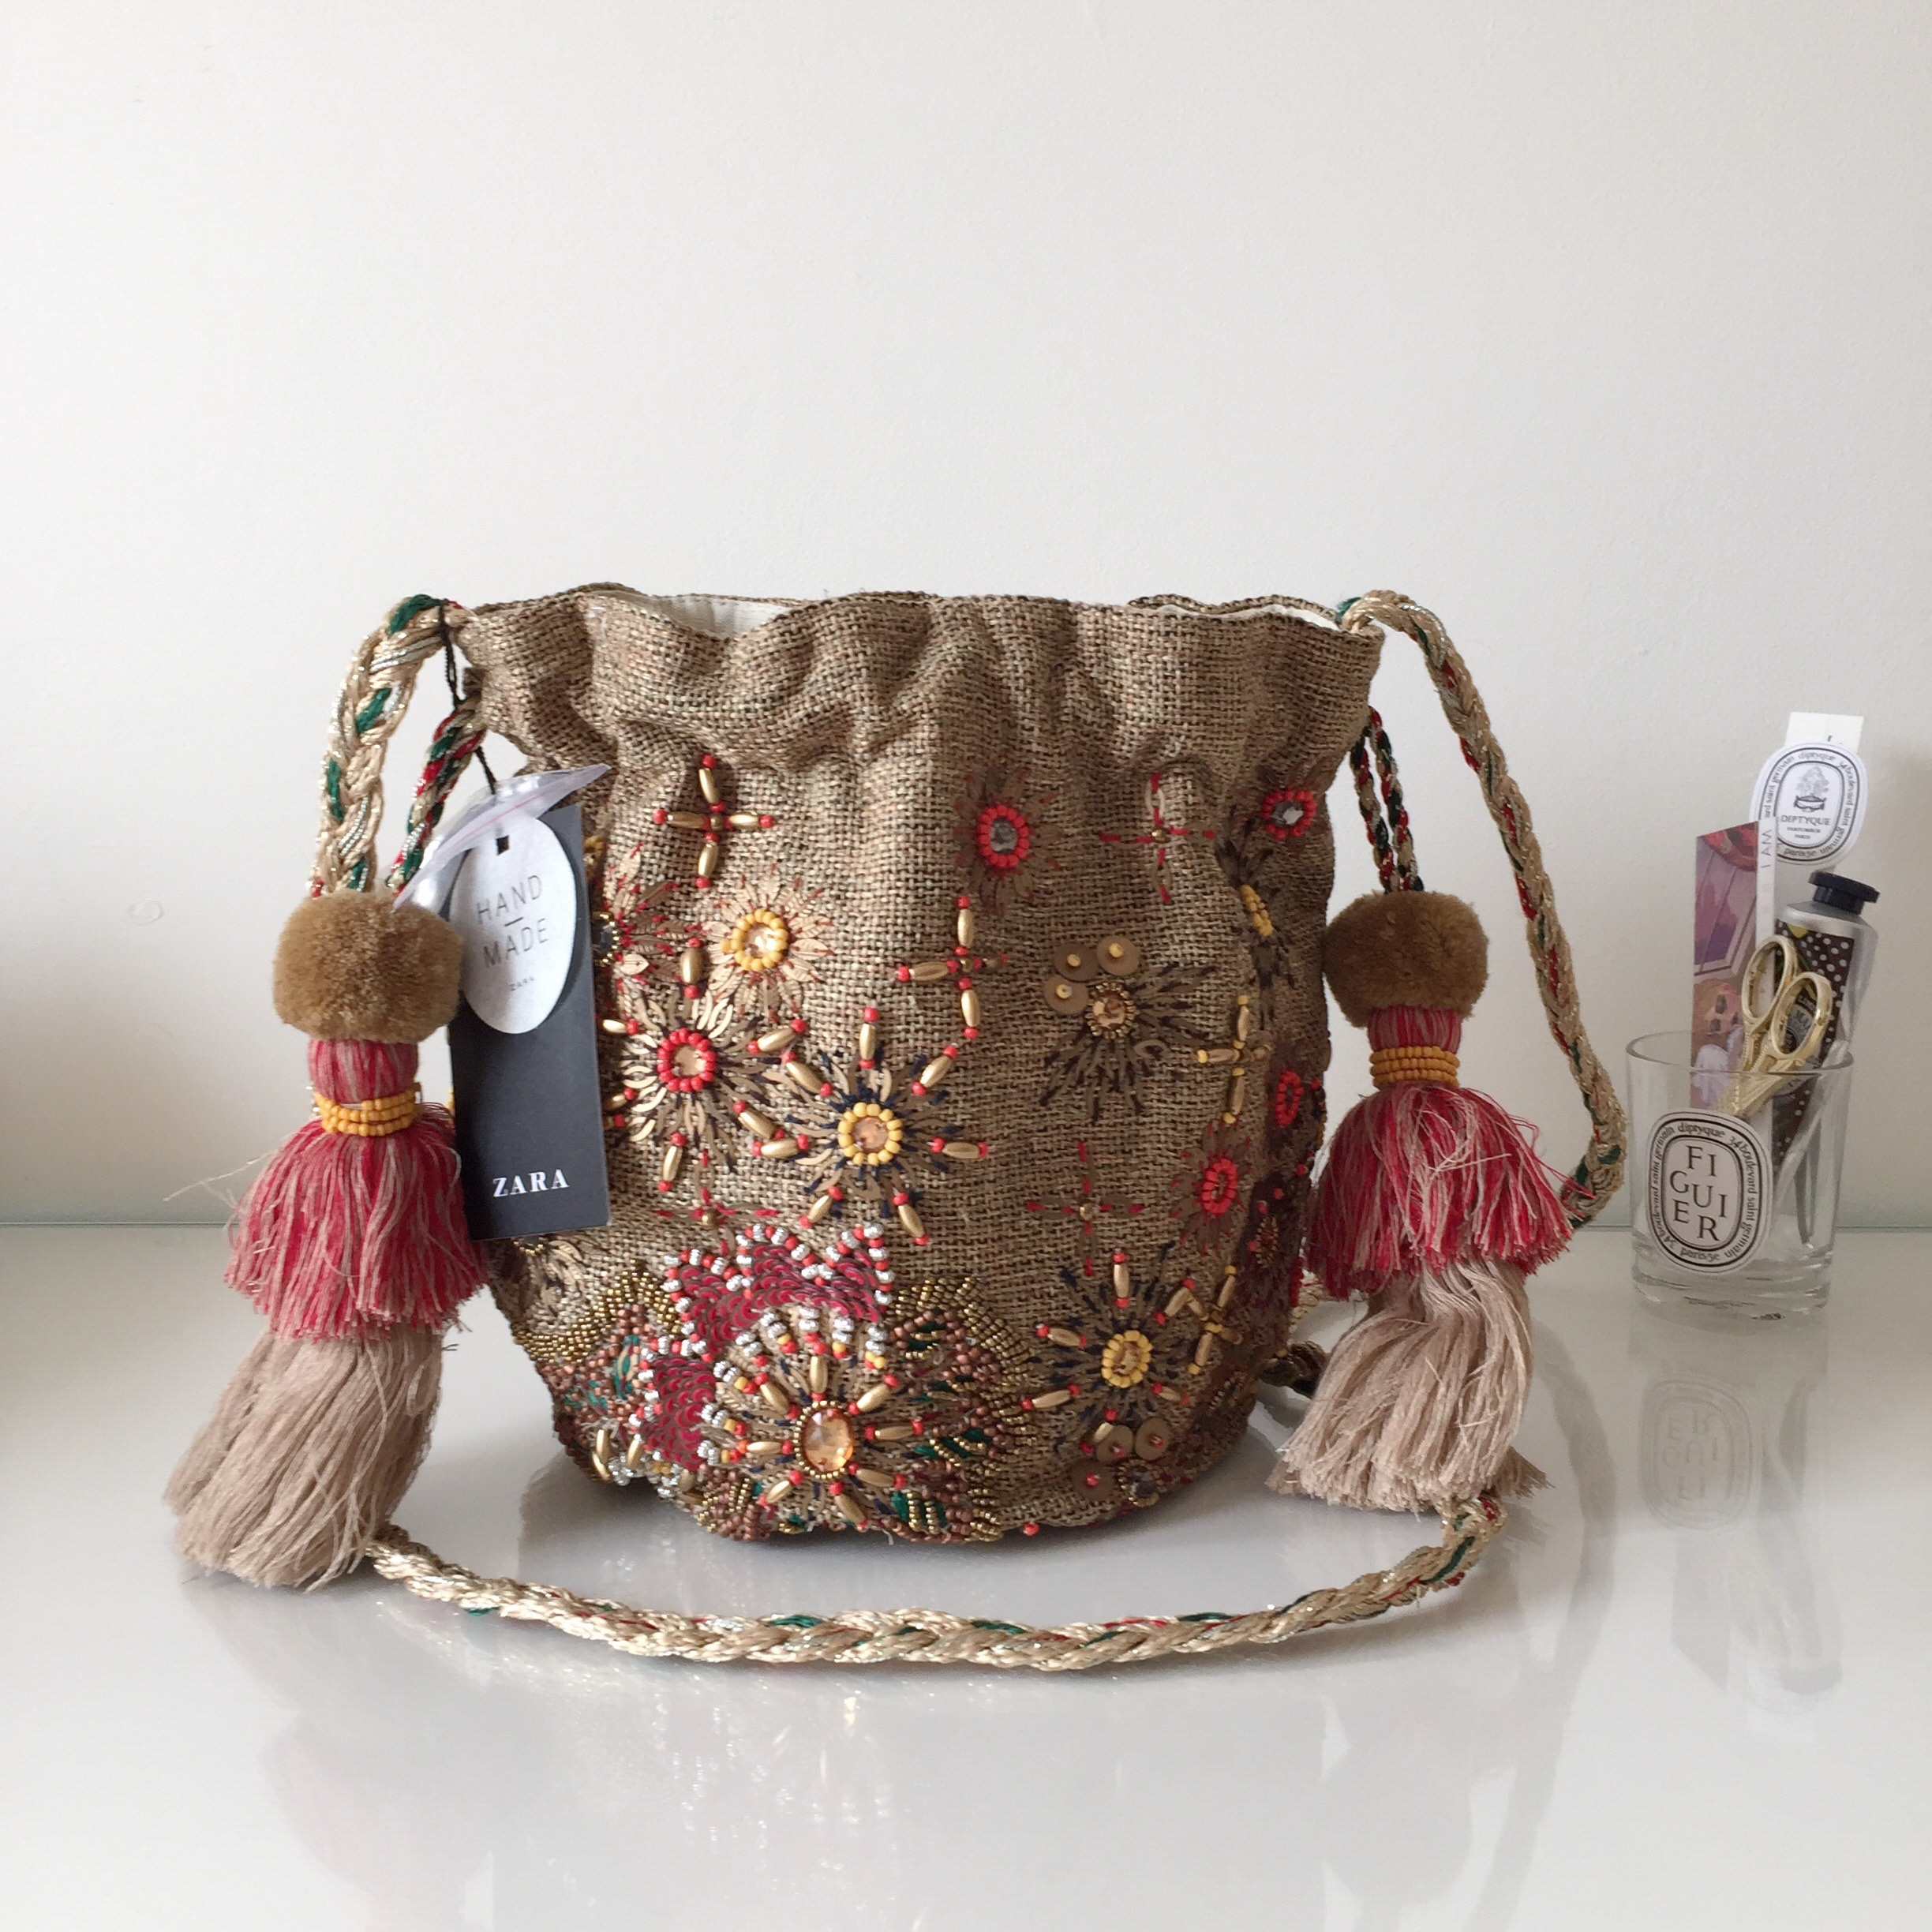 6fcdeca32f5 Zara beaded bucket bag with tassles and pom poms.... - Depop